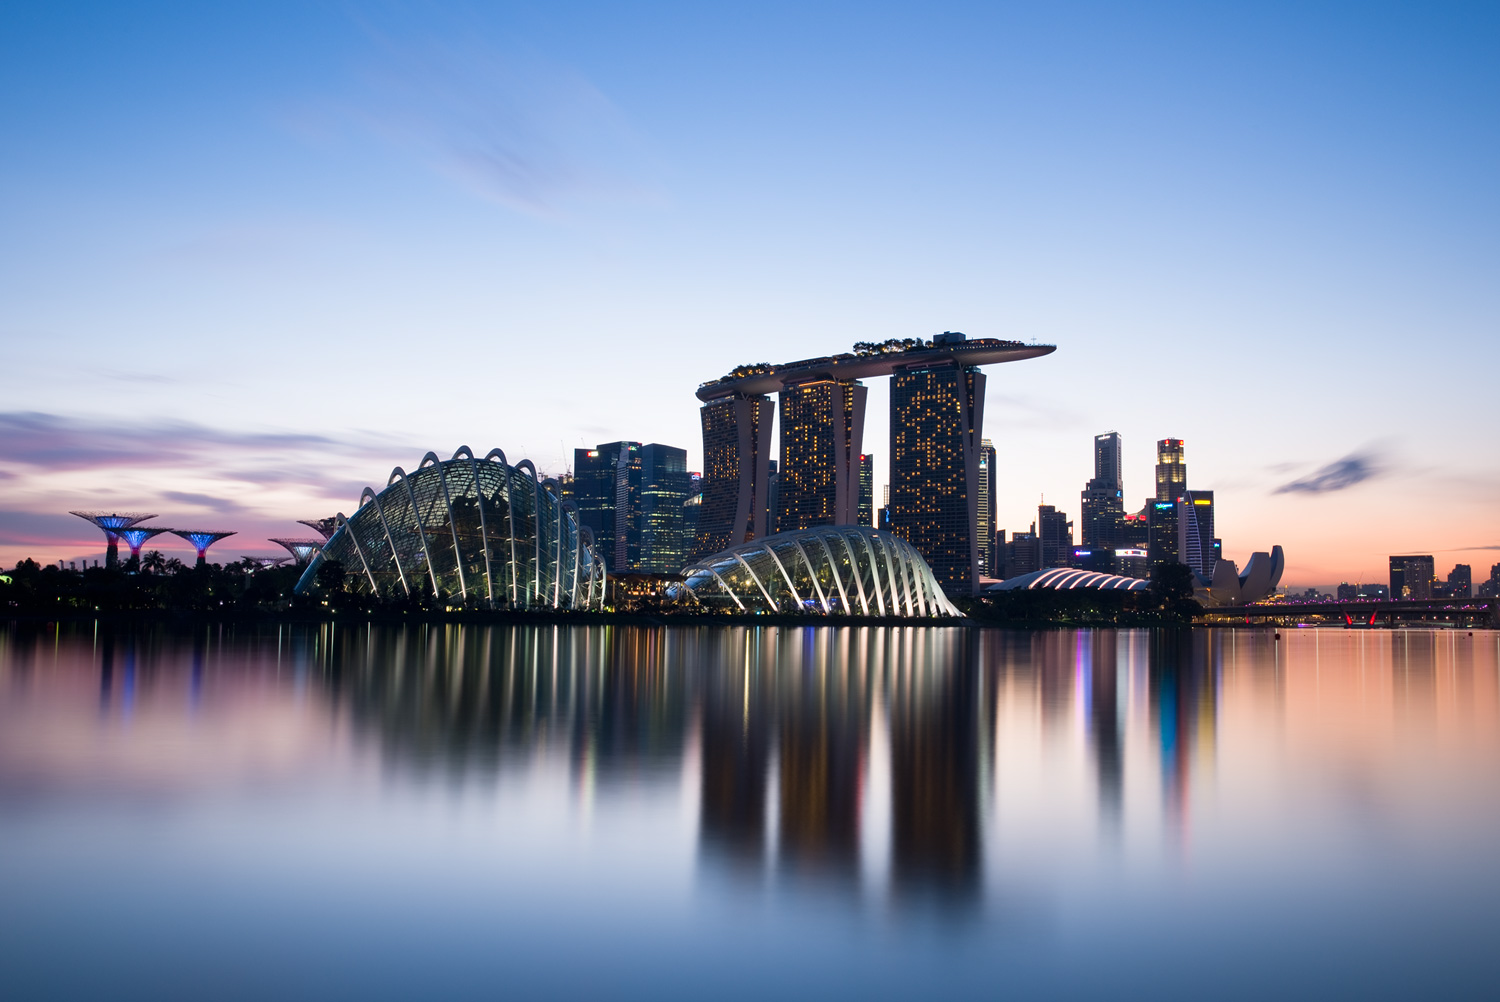 Image: Marina Bay (Singapore) (35mm, f/11, 194 seconds, ISO100).